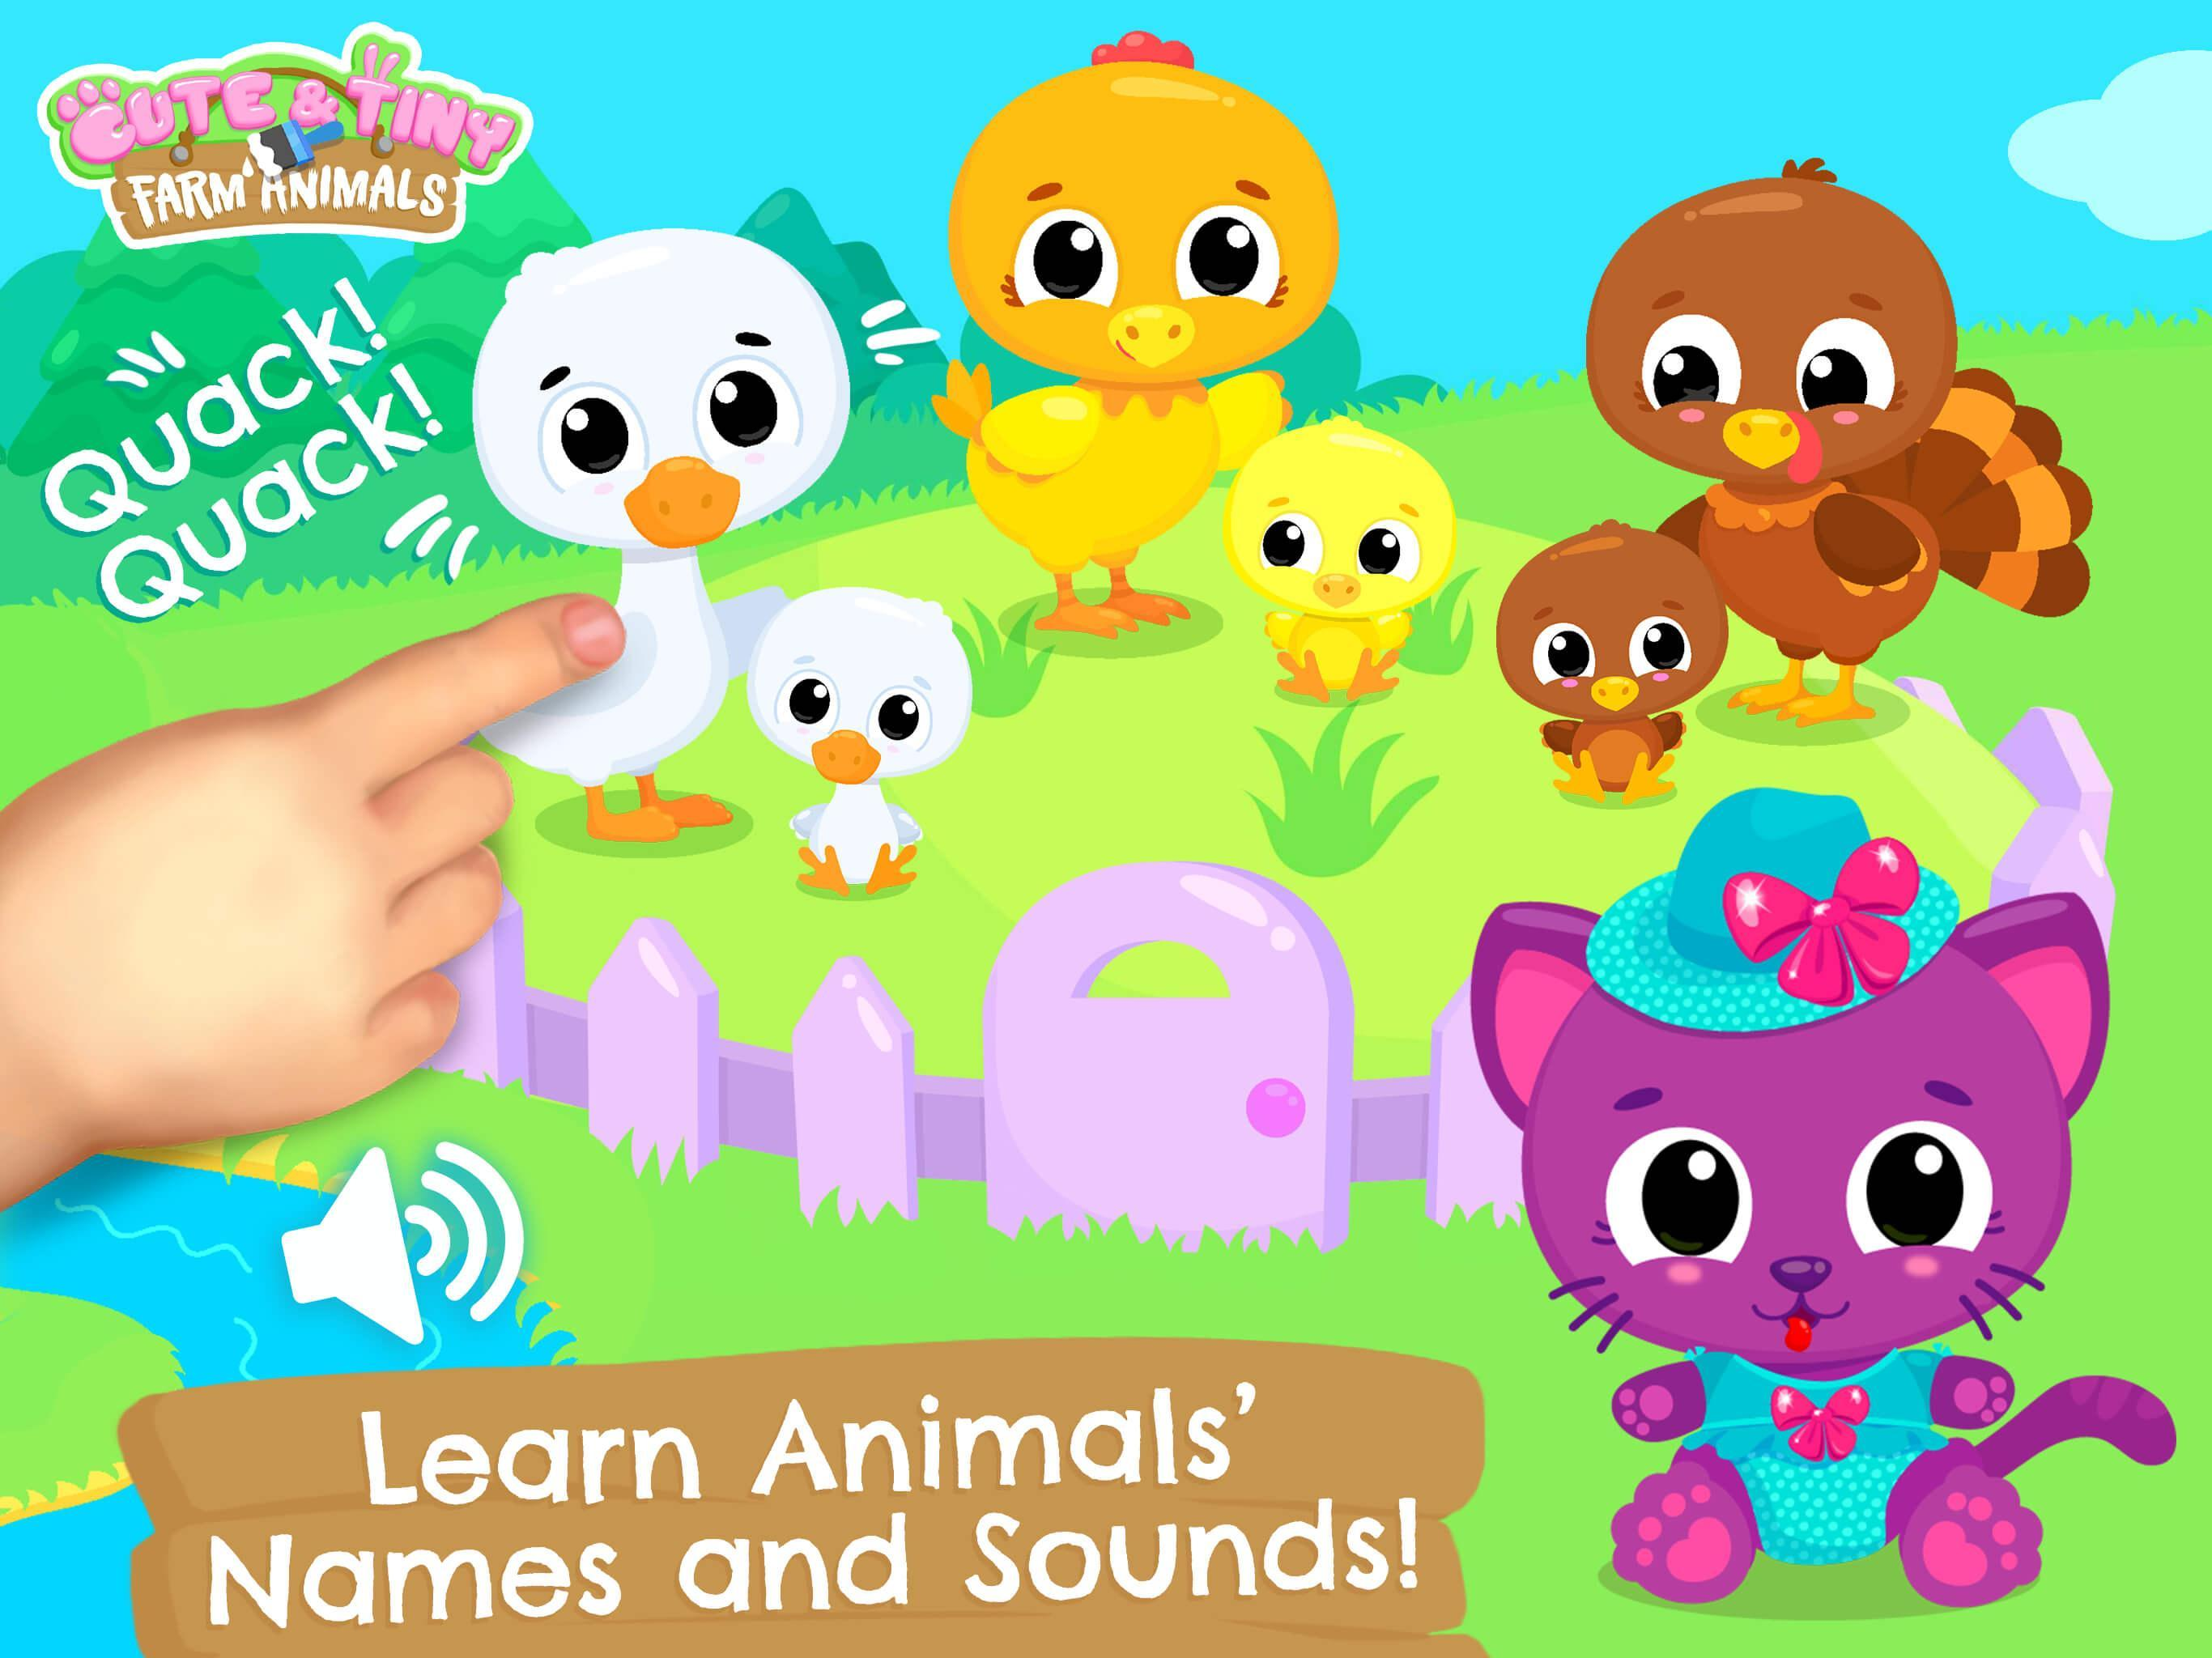 Cute & Tiny Farm Animals for Android - APK Download